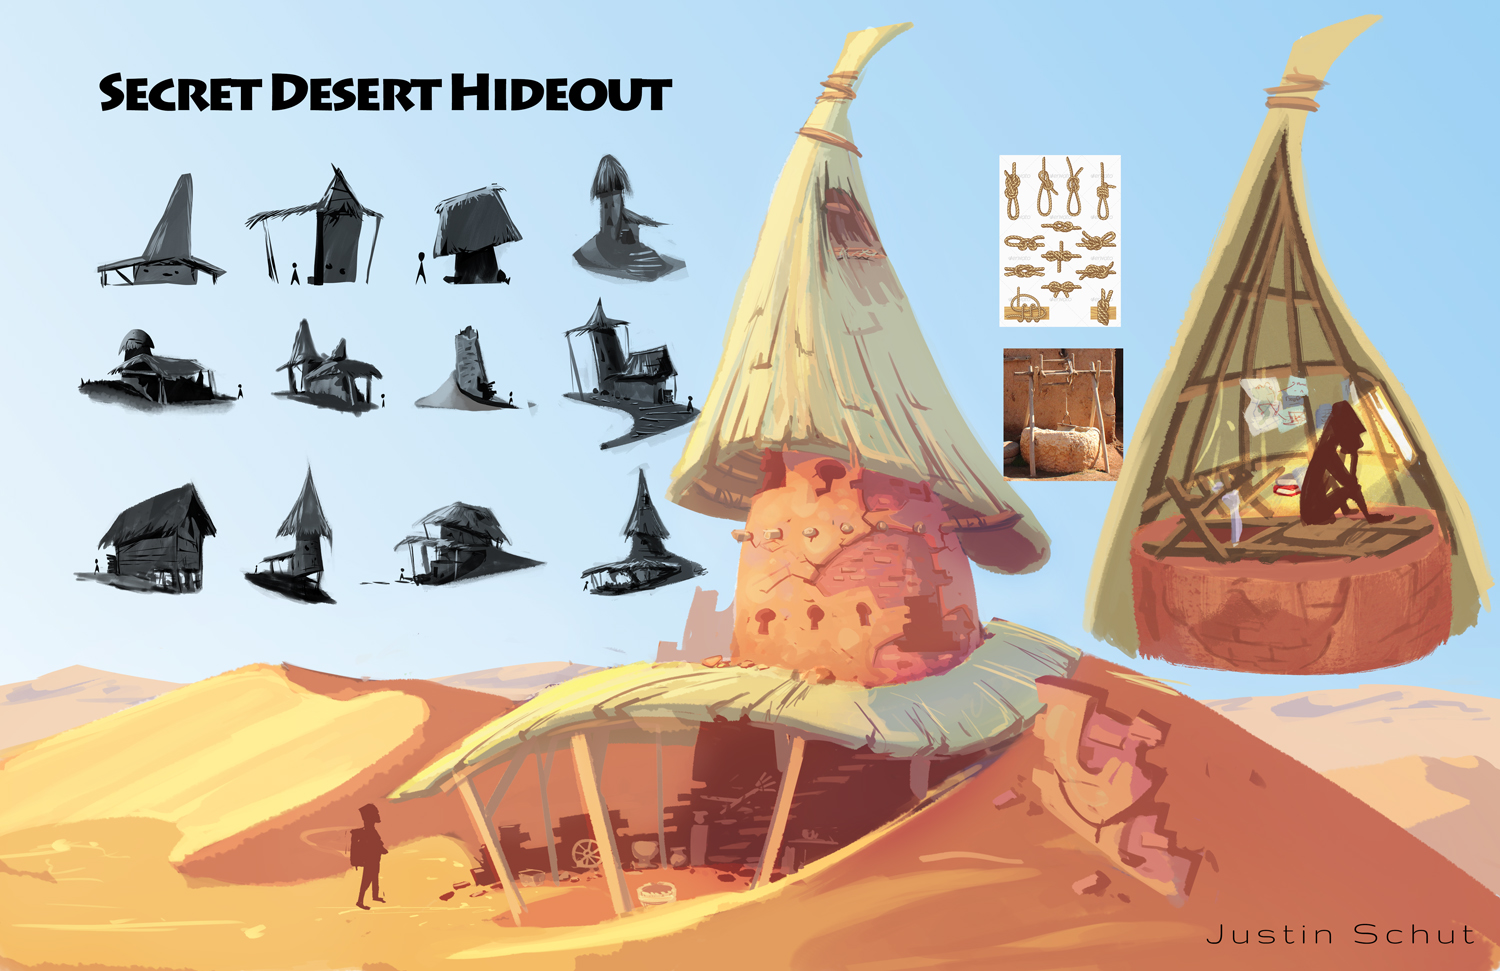 Secret Desert Hideout